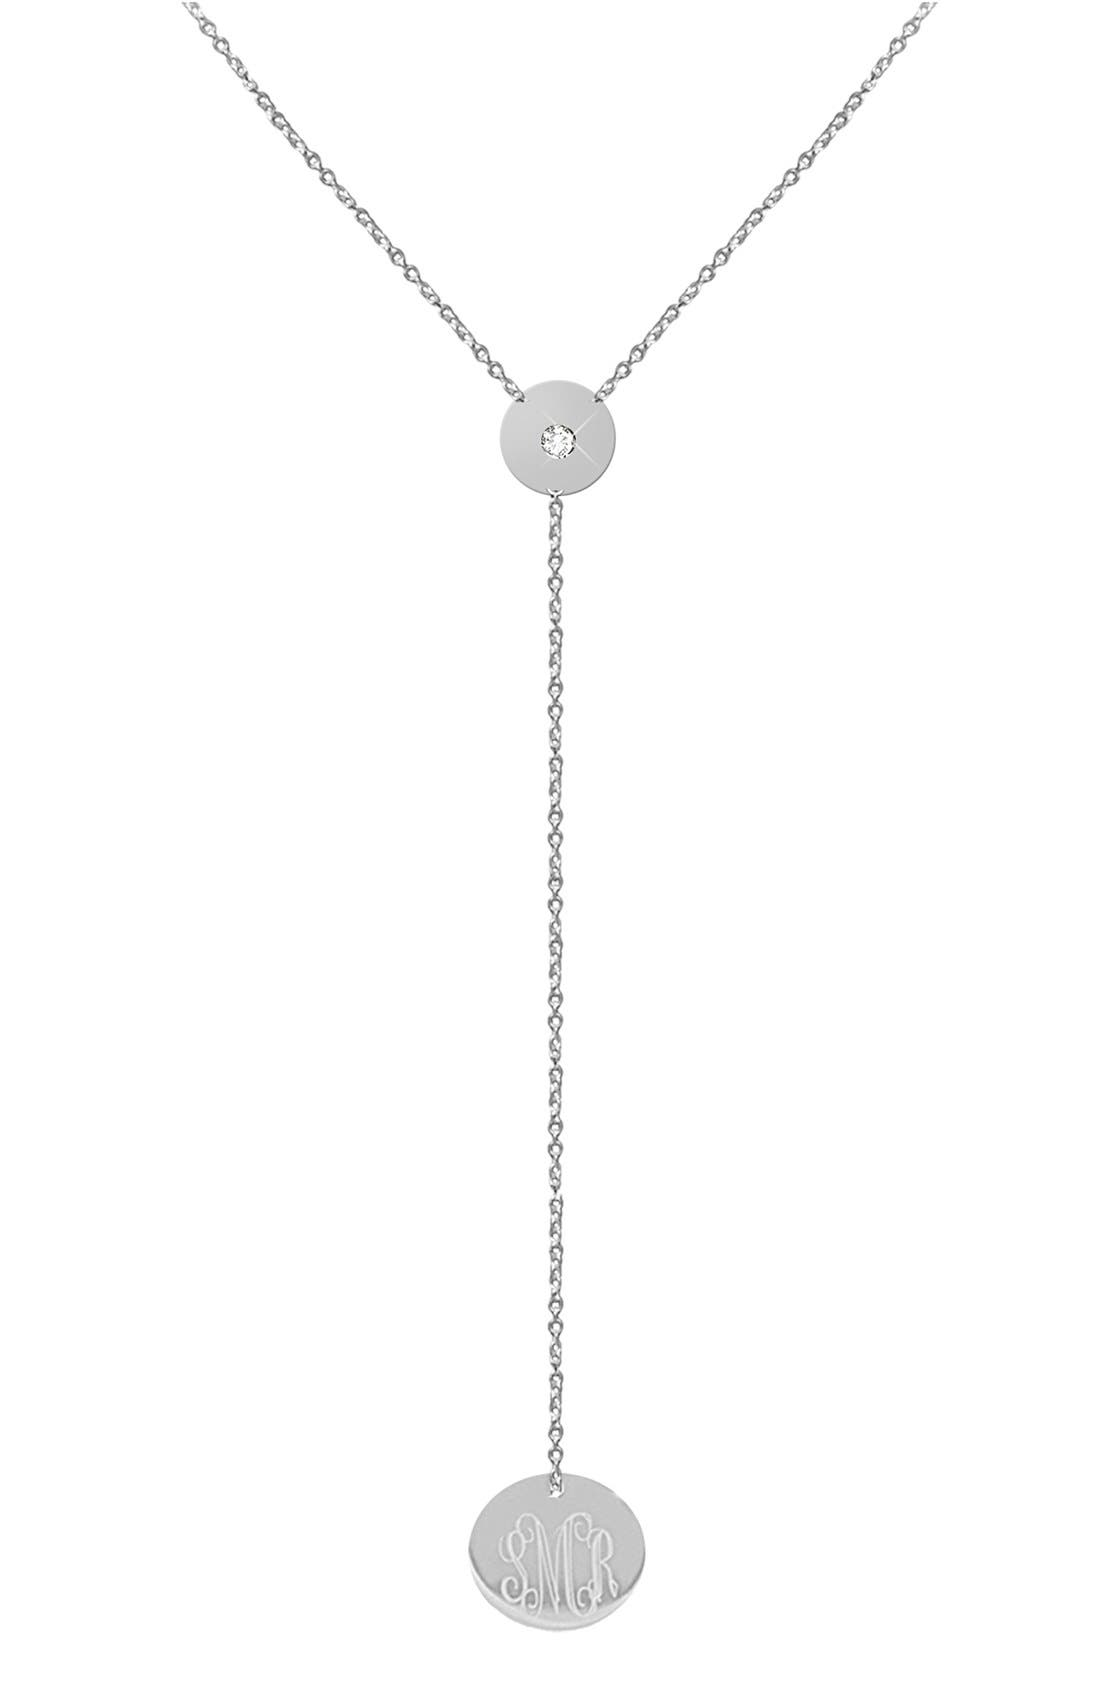 Jane Basch Designs Diamond & Personalized Monogram Y-Necklace (Nordstrom Online Exclusive)